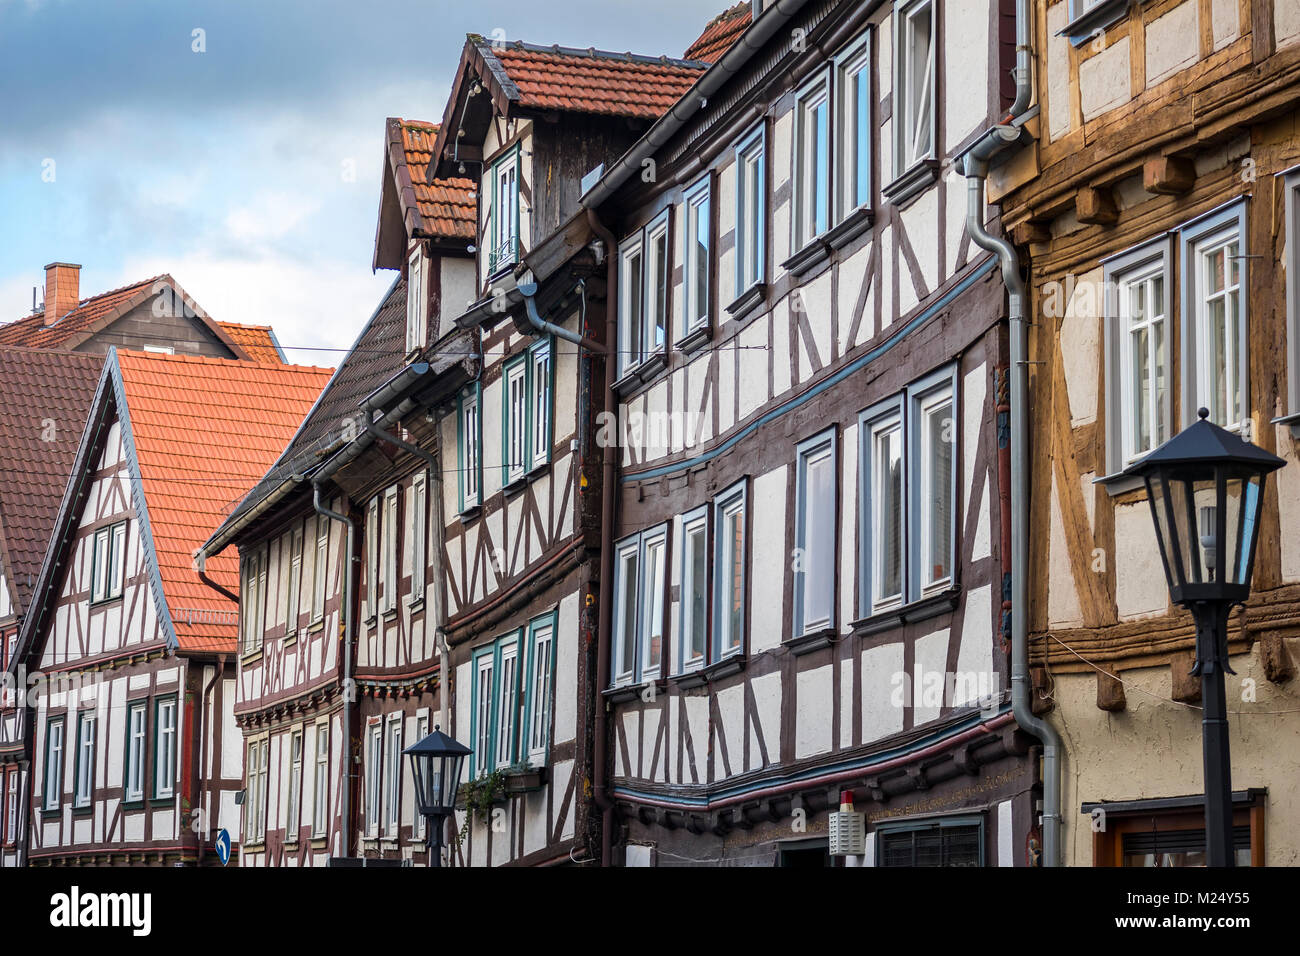 Alsfeld, Germany, half-timbered houses in old town area, street Roßmark - Stock Image